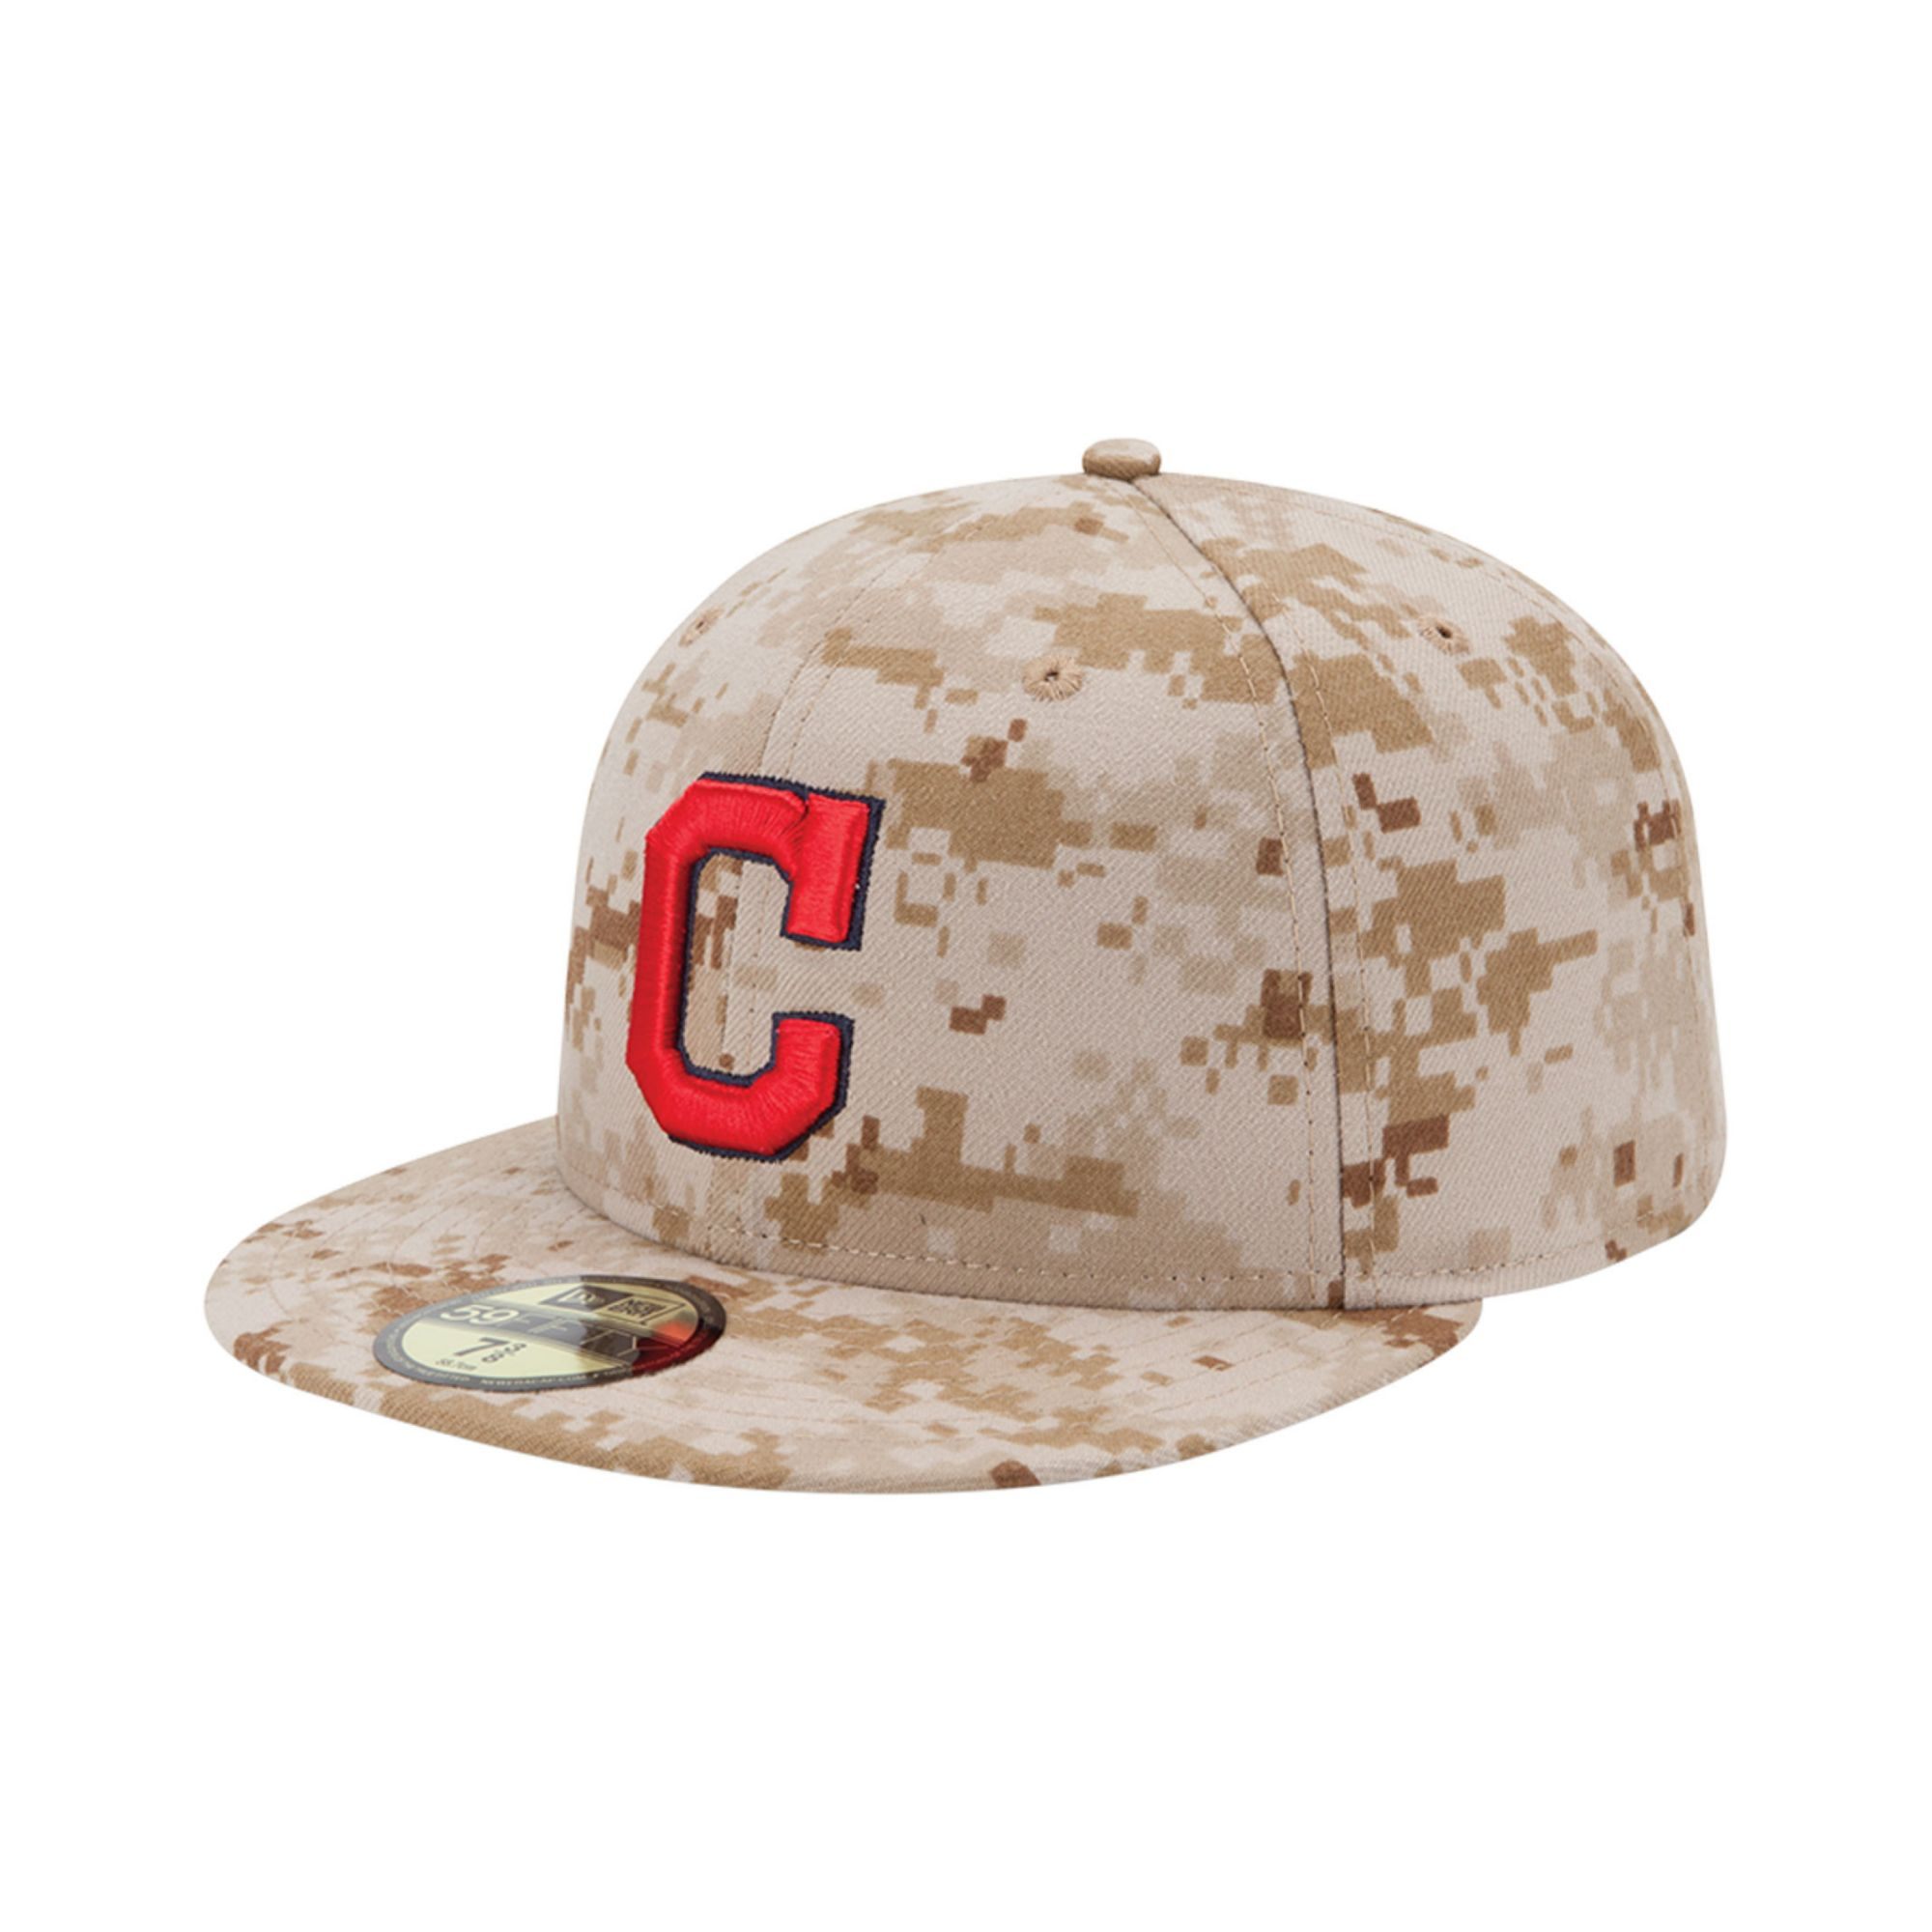 separation shoes 6d39e 5b725 KTZ Cleveland Indians Mlb Memorial Day Stars Stripes 59fifty Cap in ...